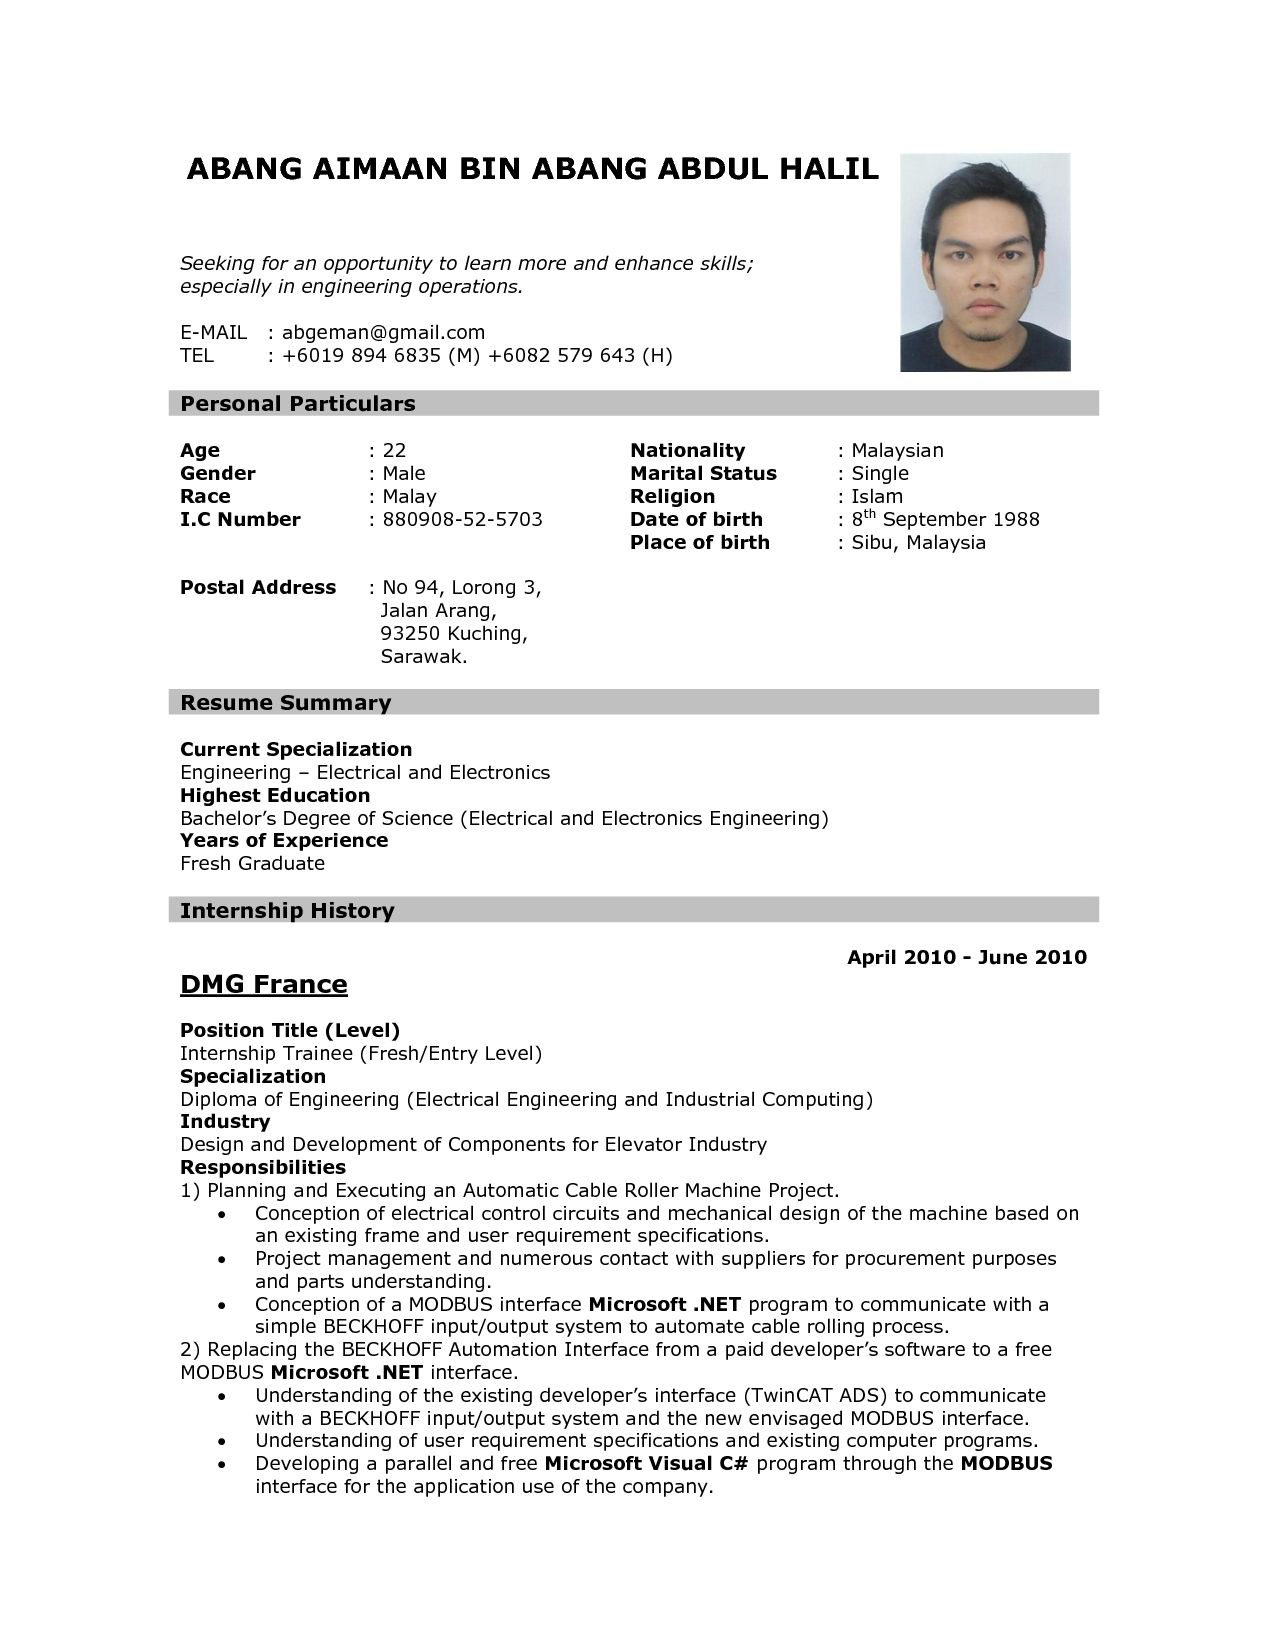 resume cover letter sample best templatecover letter samples for skills for high school resume resume format web good resume examples example collage application resume template best sample general